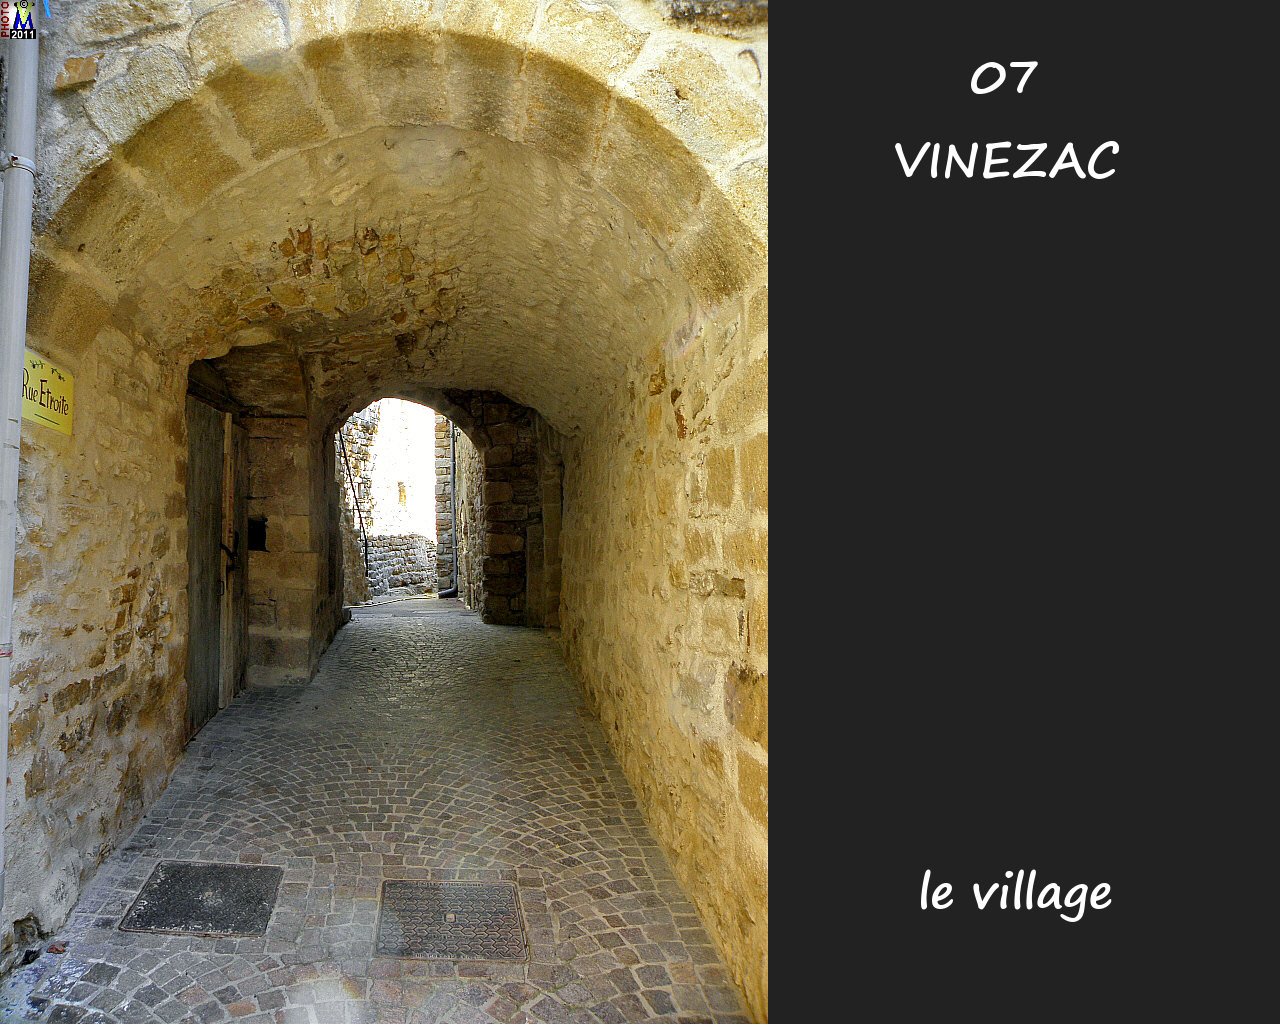 07VINEZAC_village_152.jpg